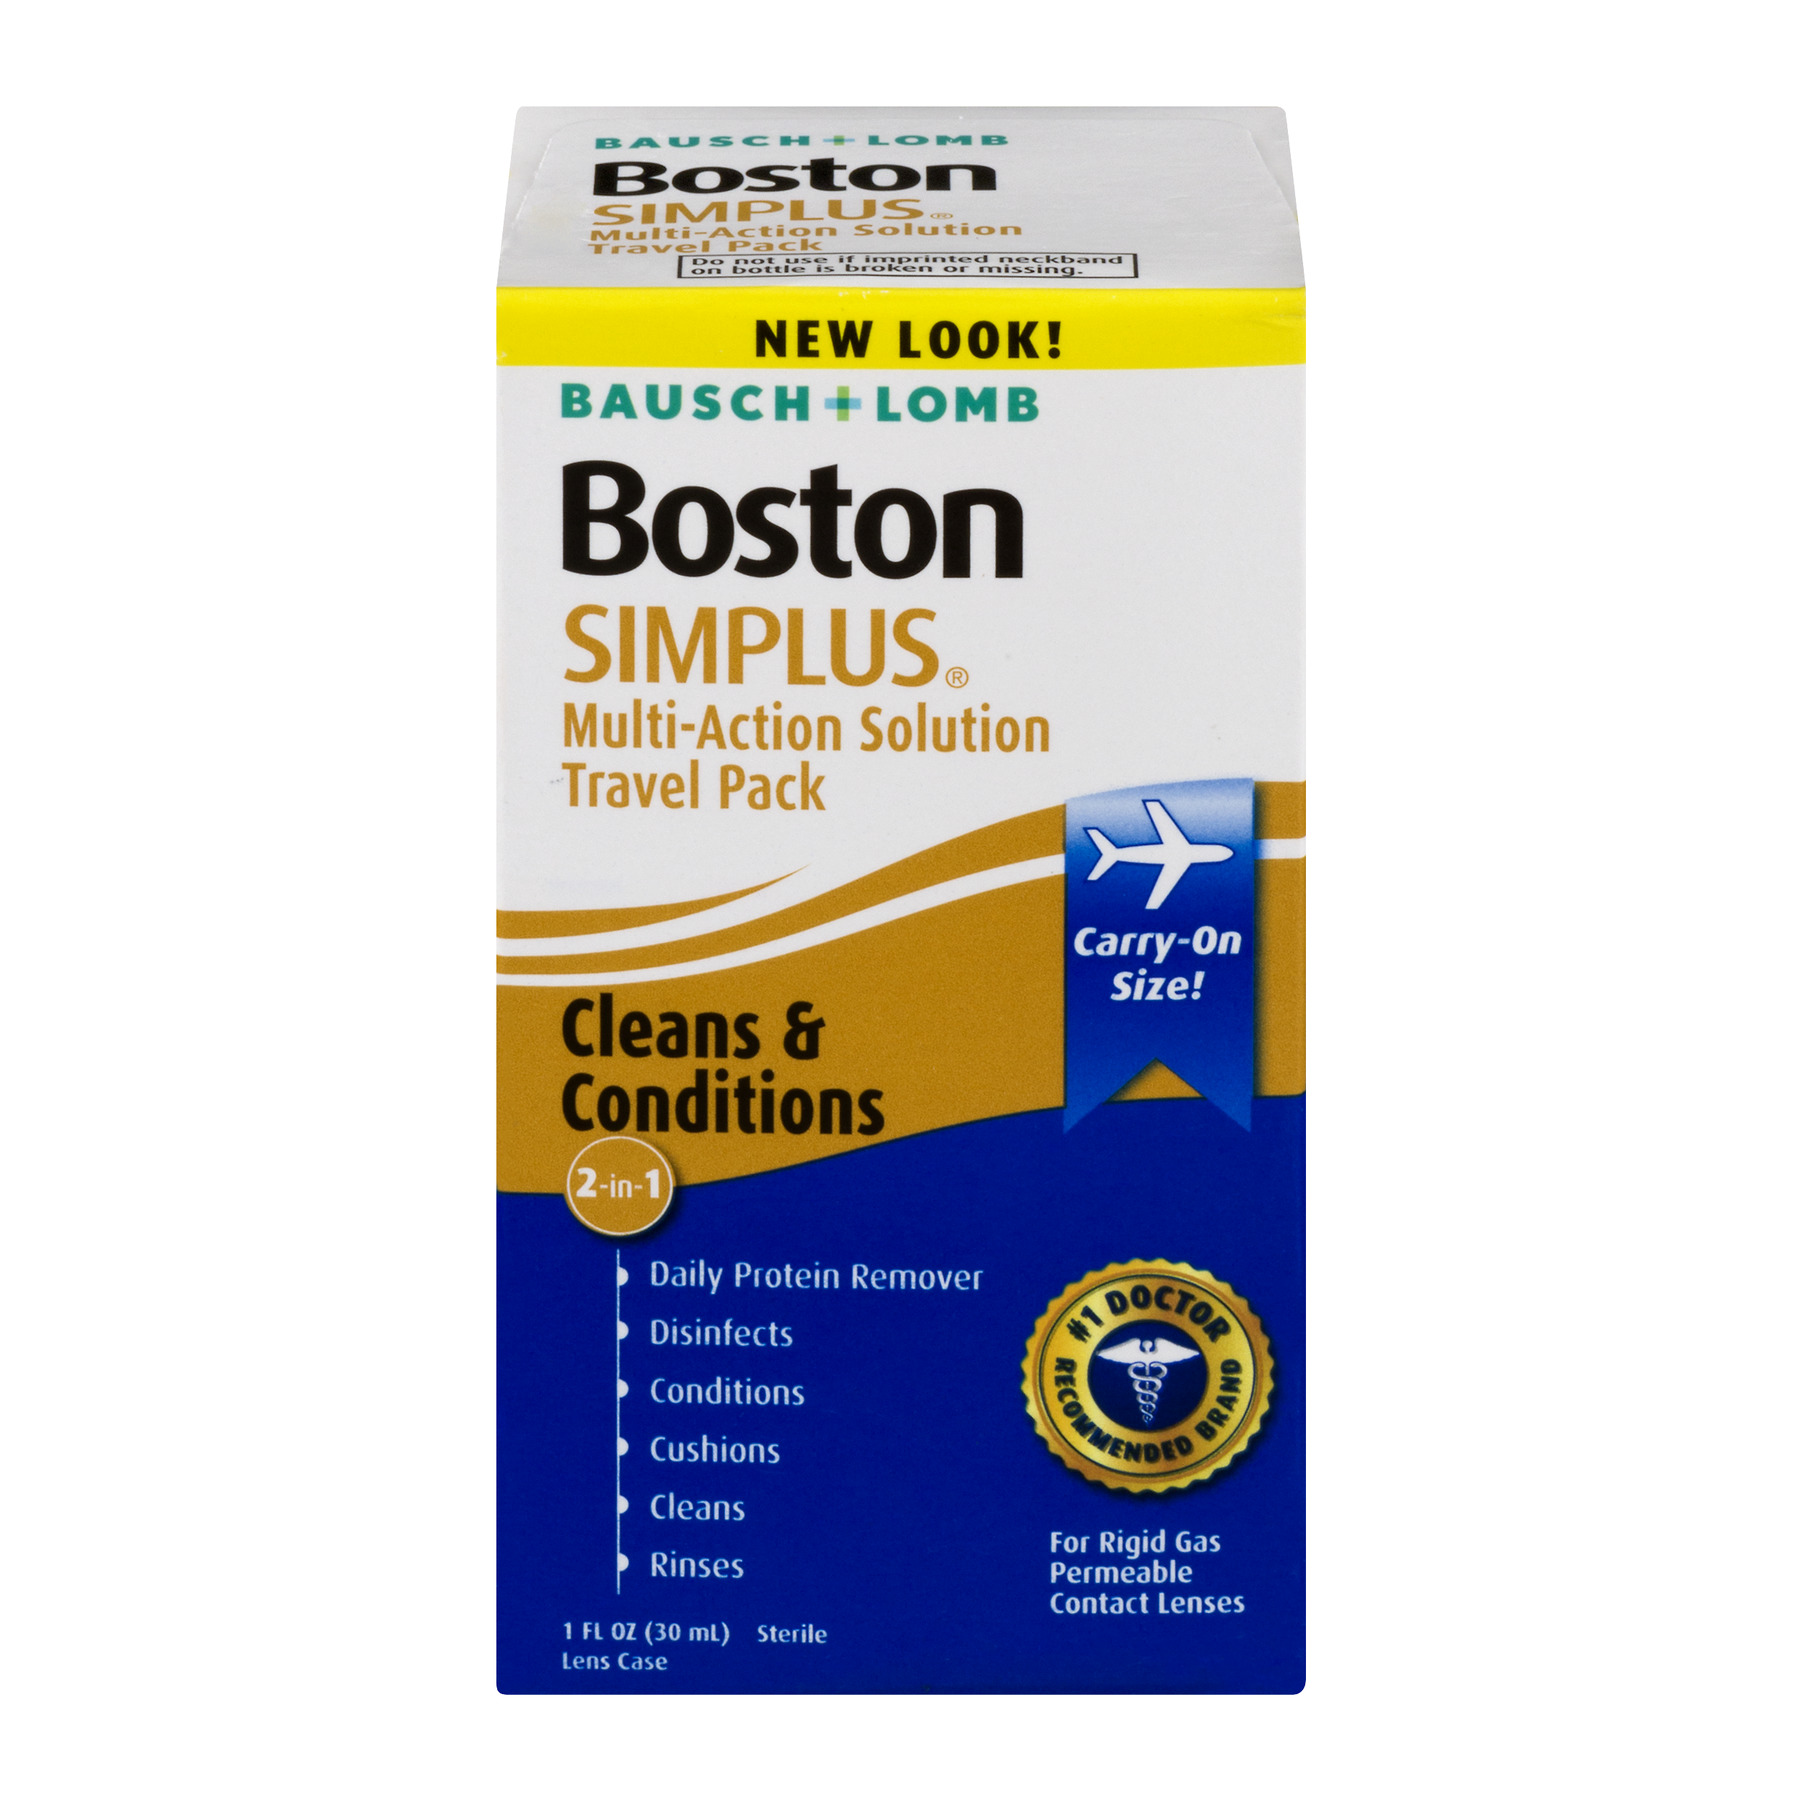 Bausch + Lomb Boston Simplus Multi-Action Solution Travel Pack - 1 CT1.0 FL OZ